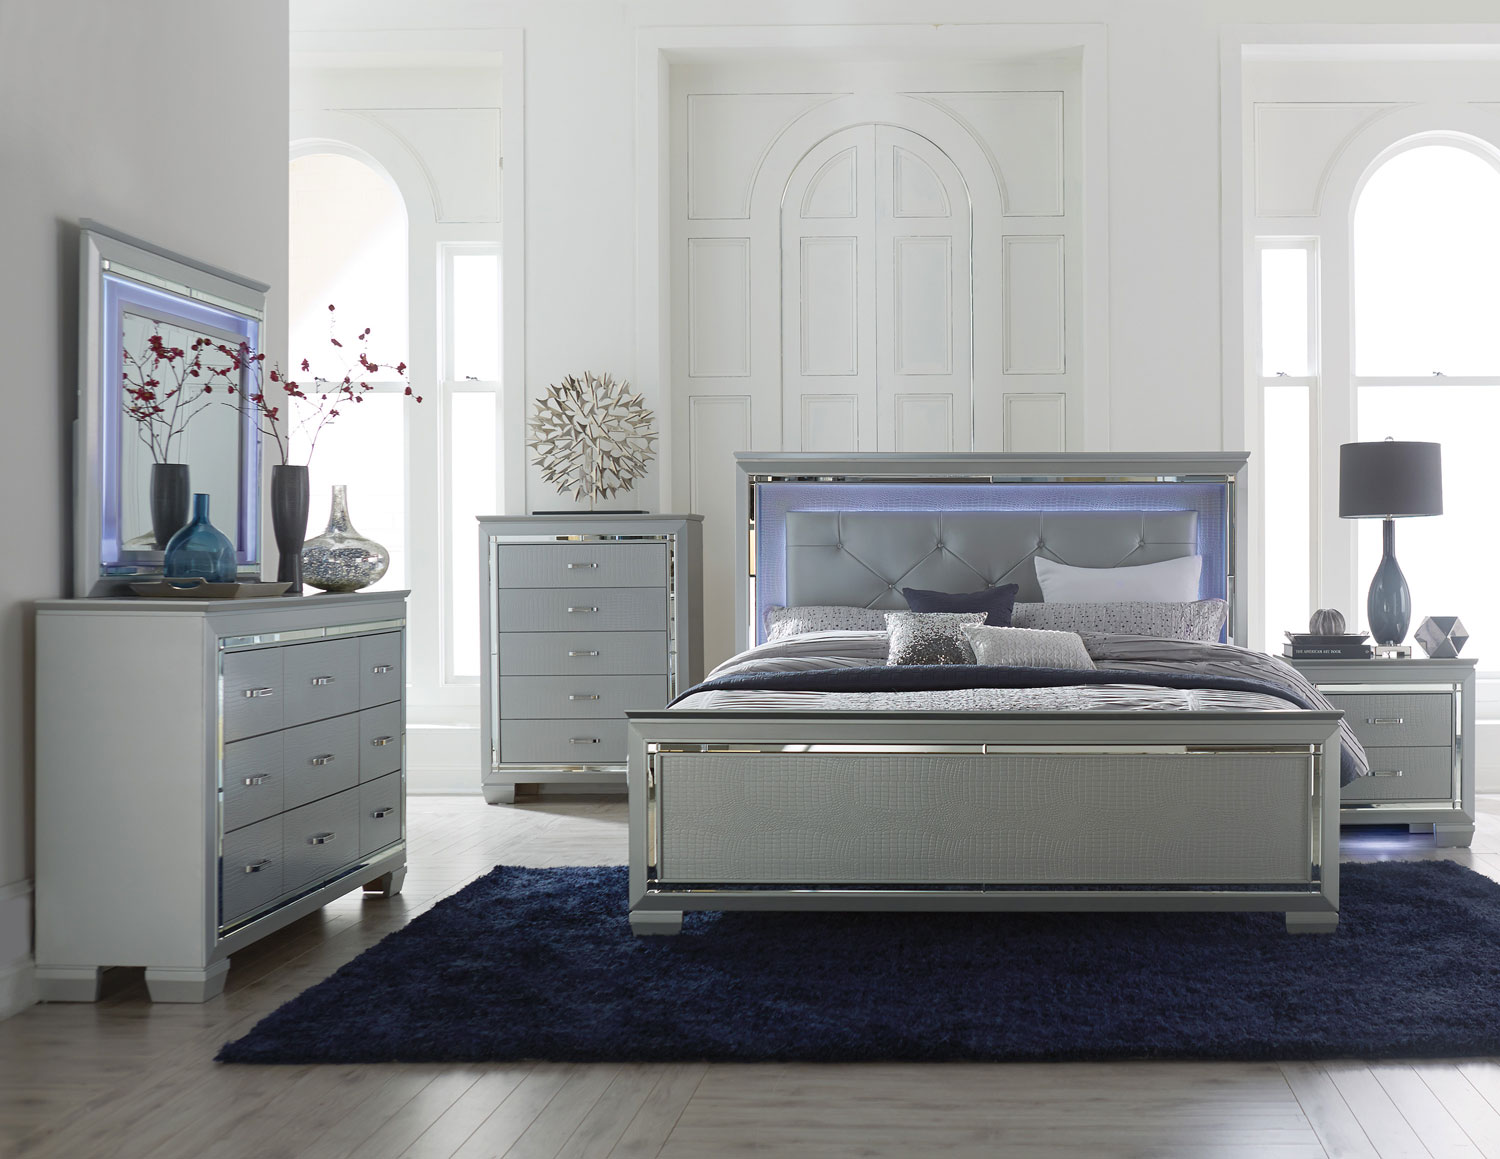 Homelegance Allura Bedroom Set with LED Lighting - Silver